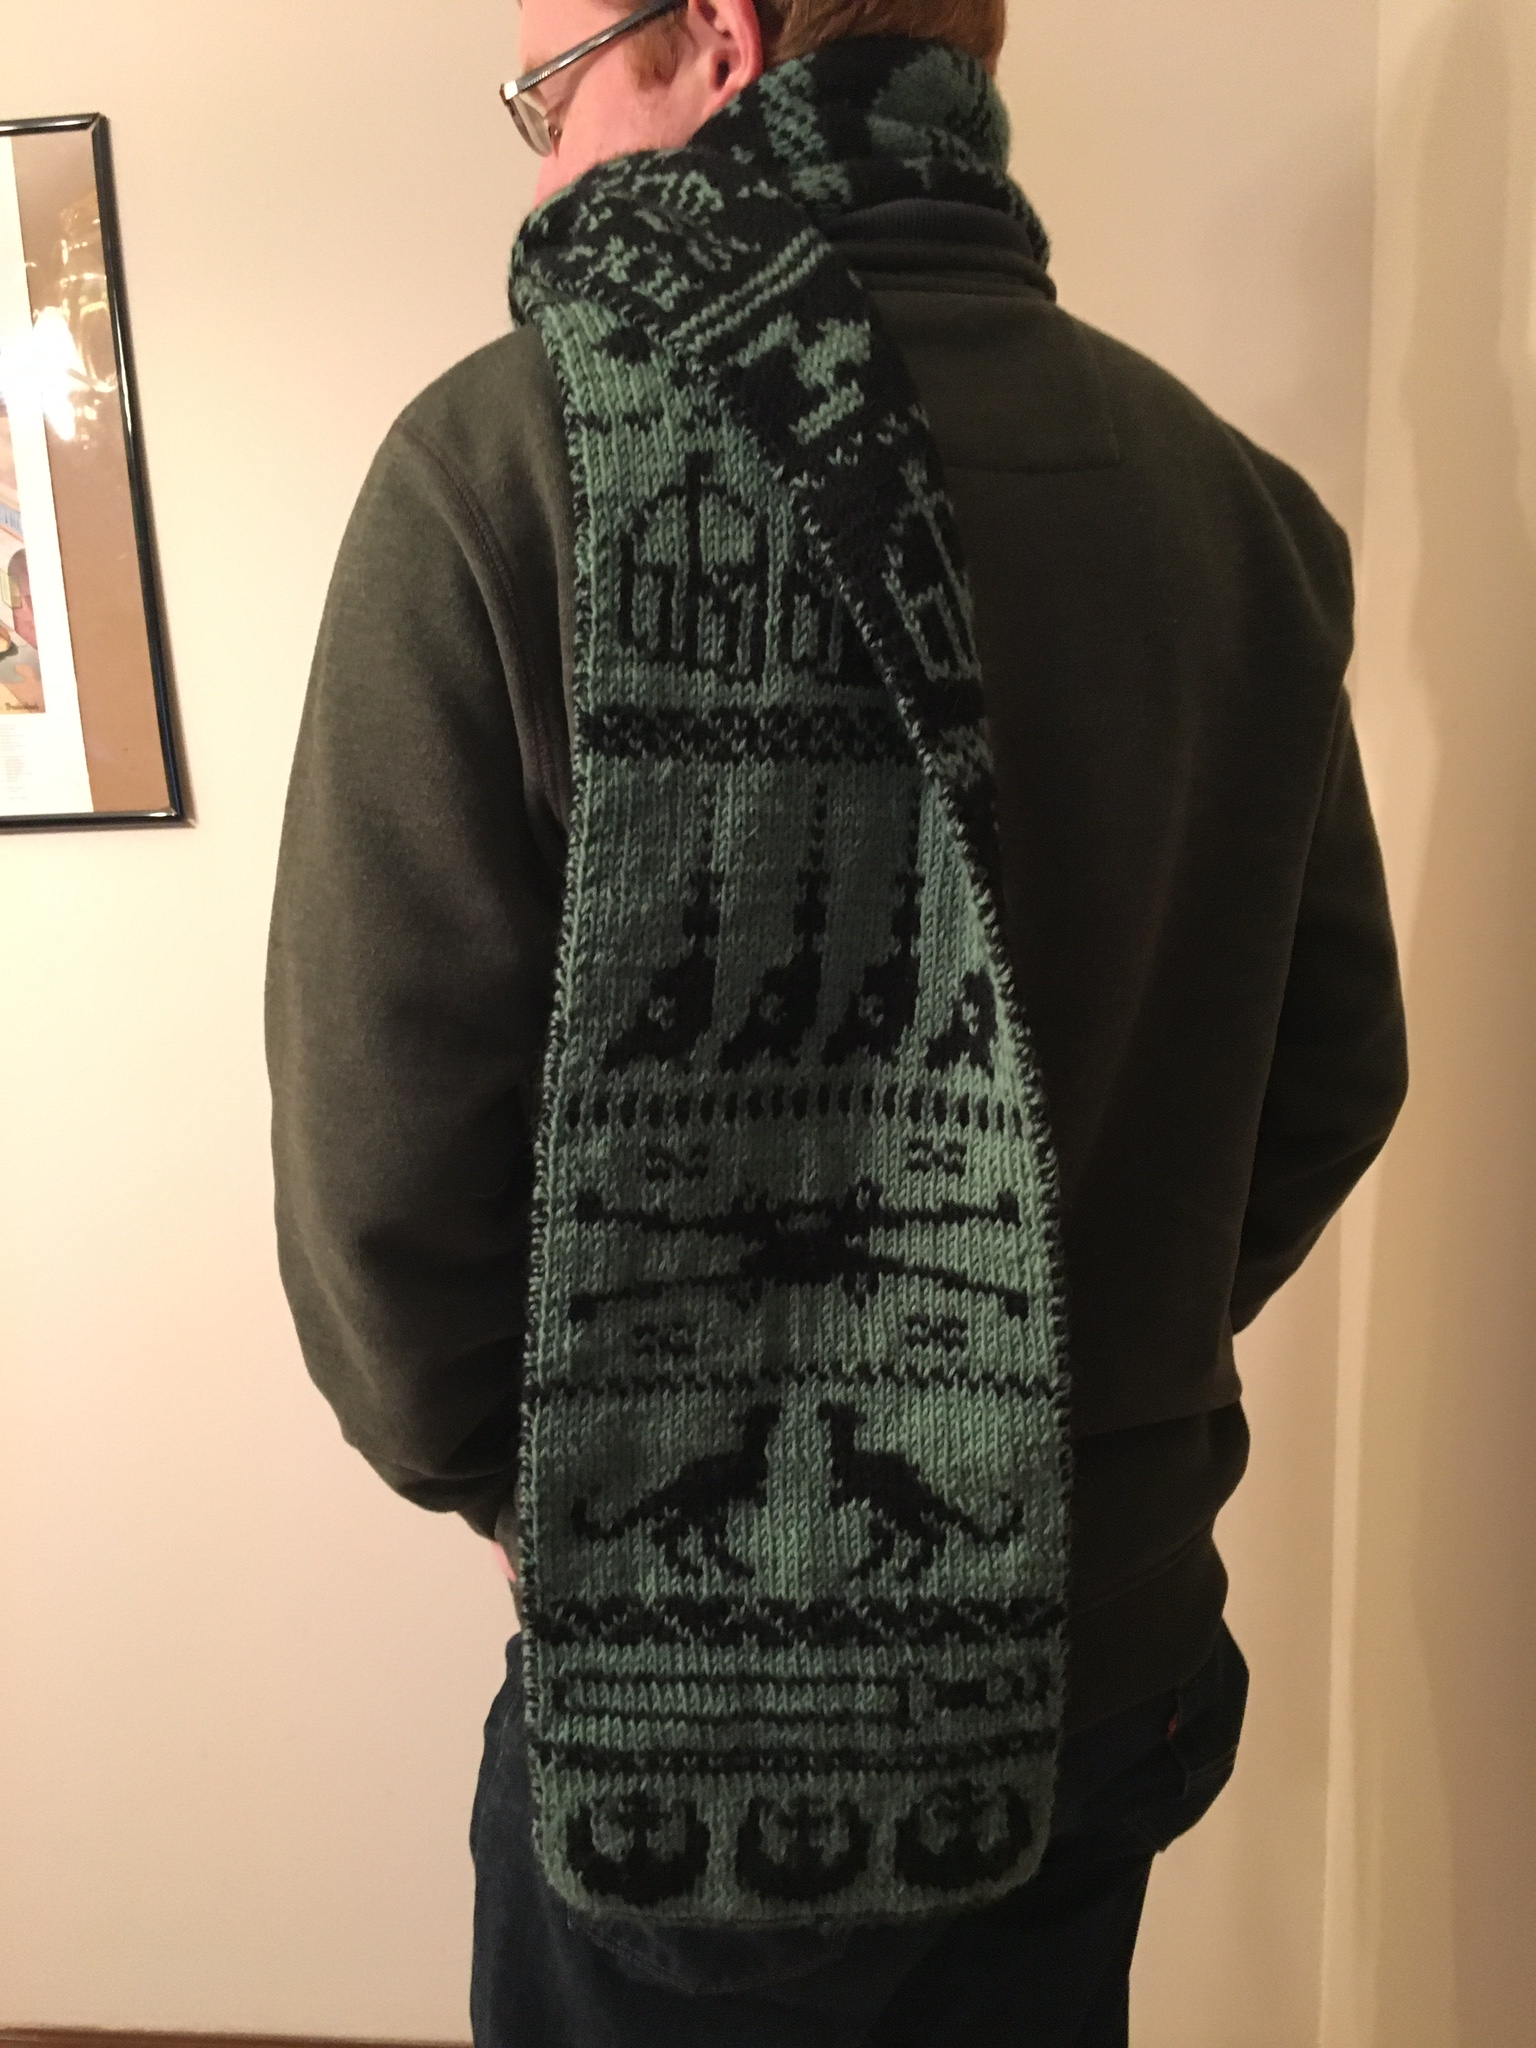 Star Wars Scarf and Learning to Double Knit Tag Sis, Youre It!